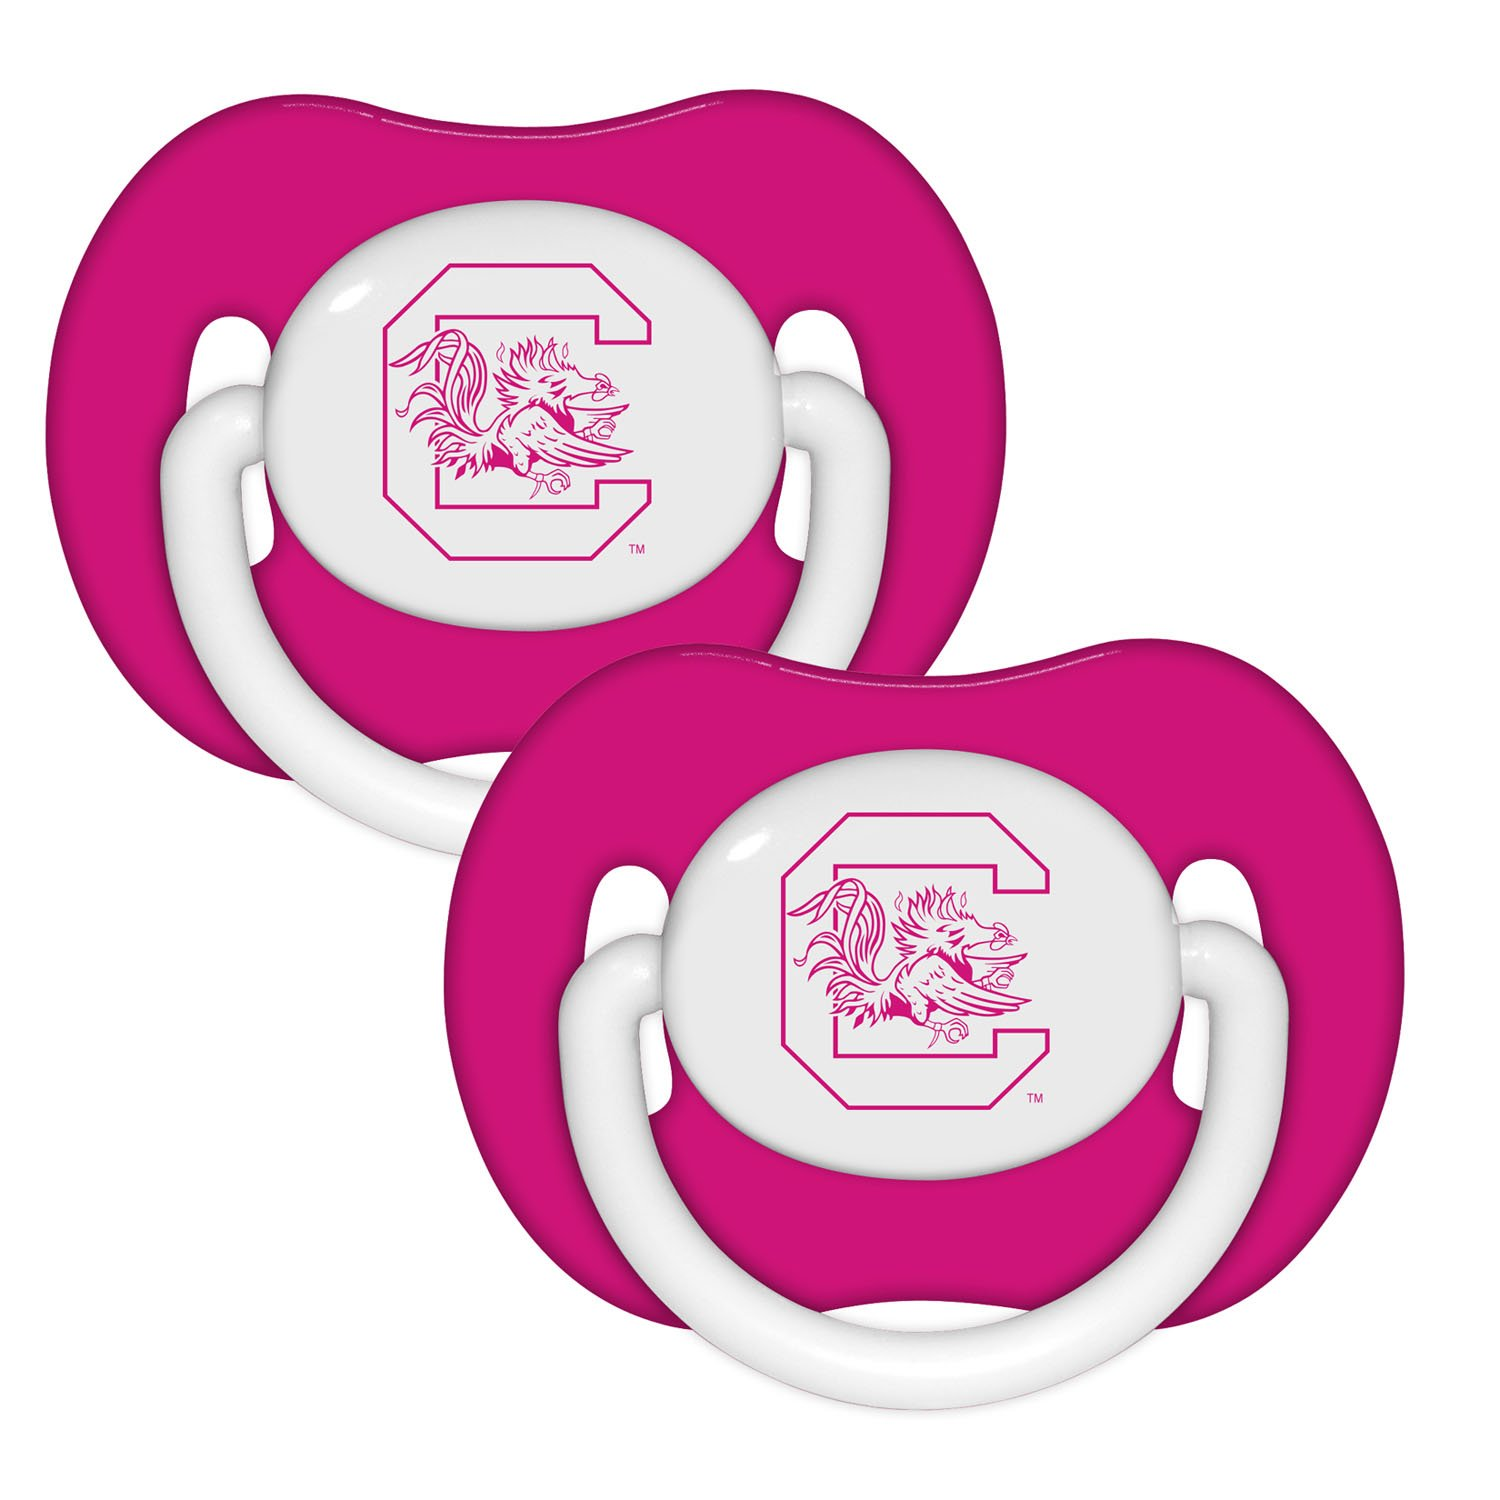 Baby Fanatic Pacifier - University of South Carolina Pink by Baby Fanatic   B00TW9EKL0